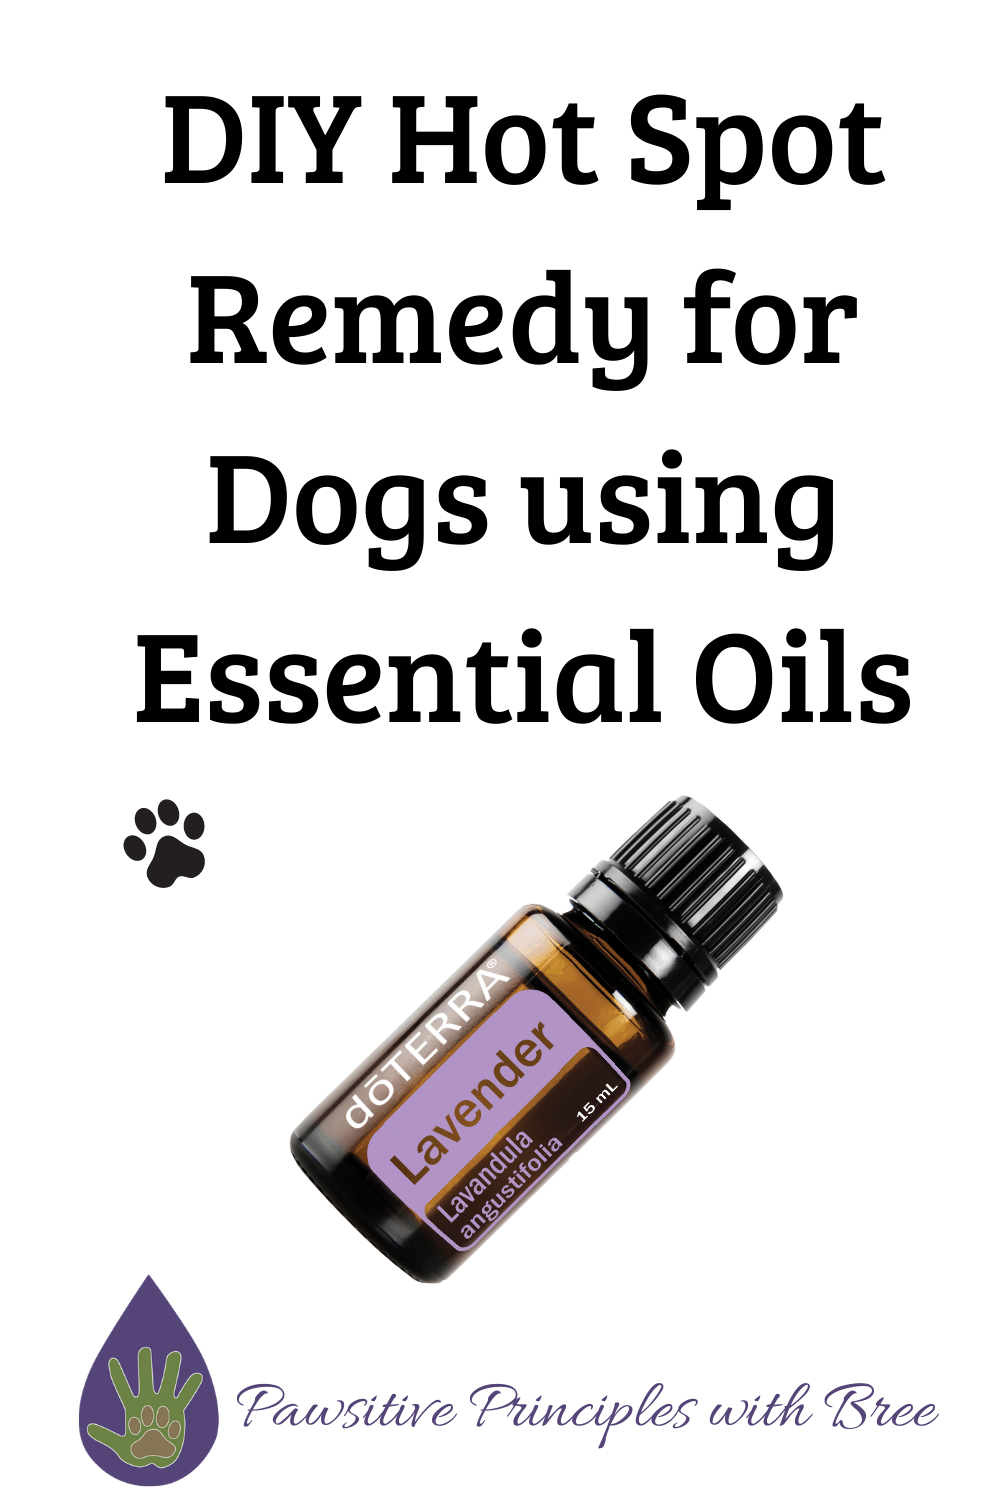 An easy DIY hot spot remedy for dogs